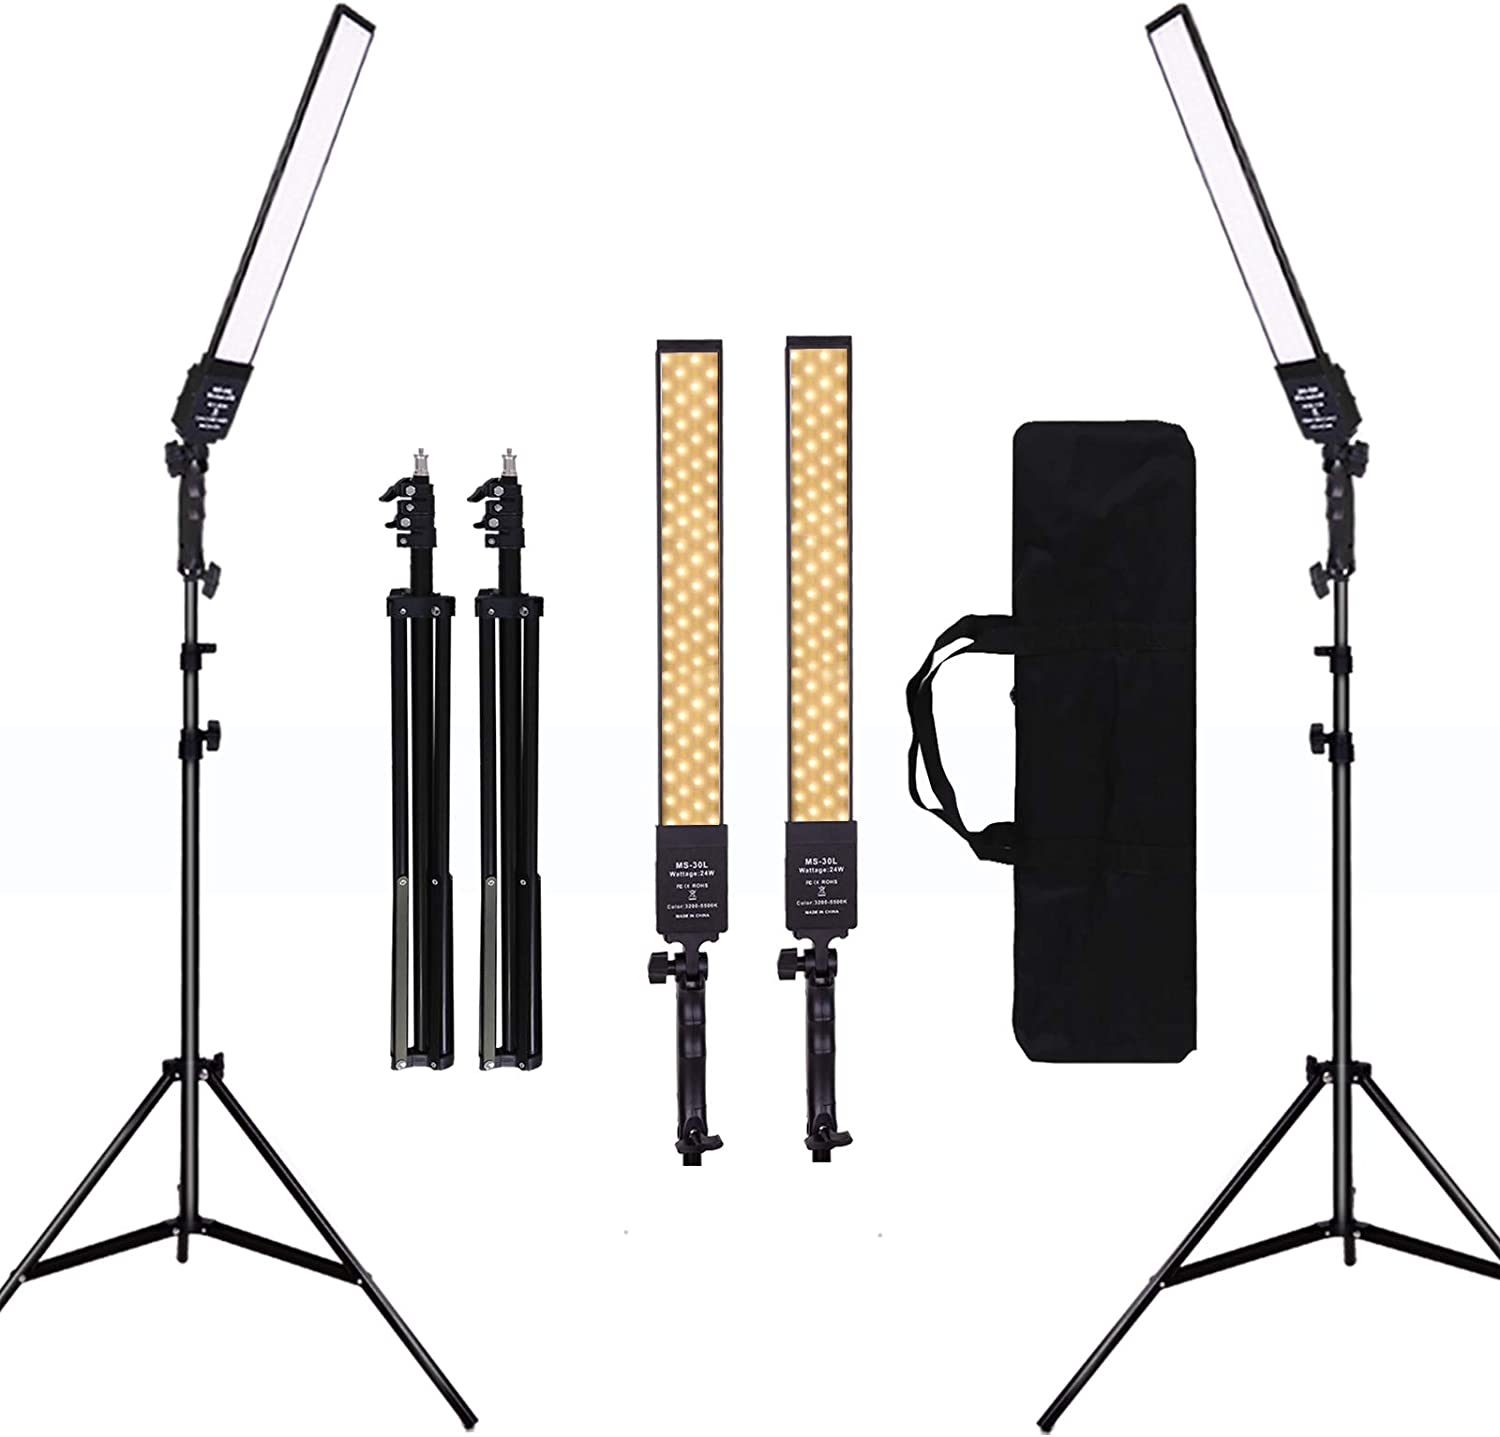 GIJUANRING 2 Packs Dimmable Bi-Color LED with Selling rankings Light Video Tripod Cheap mail order specialty store